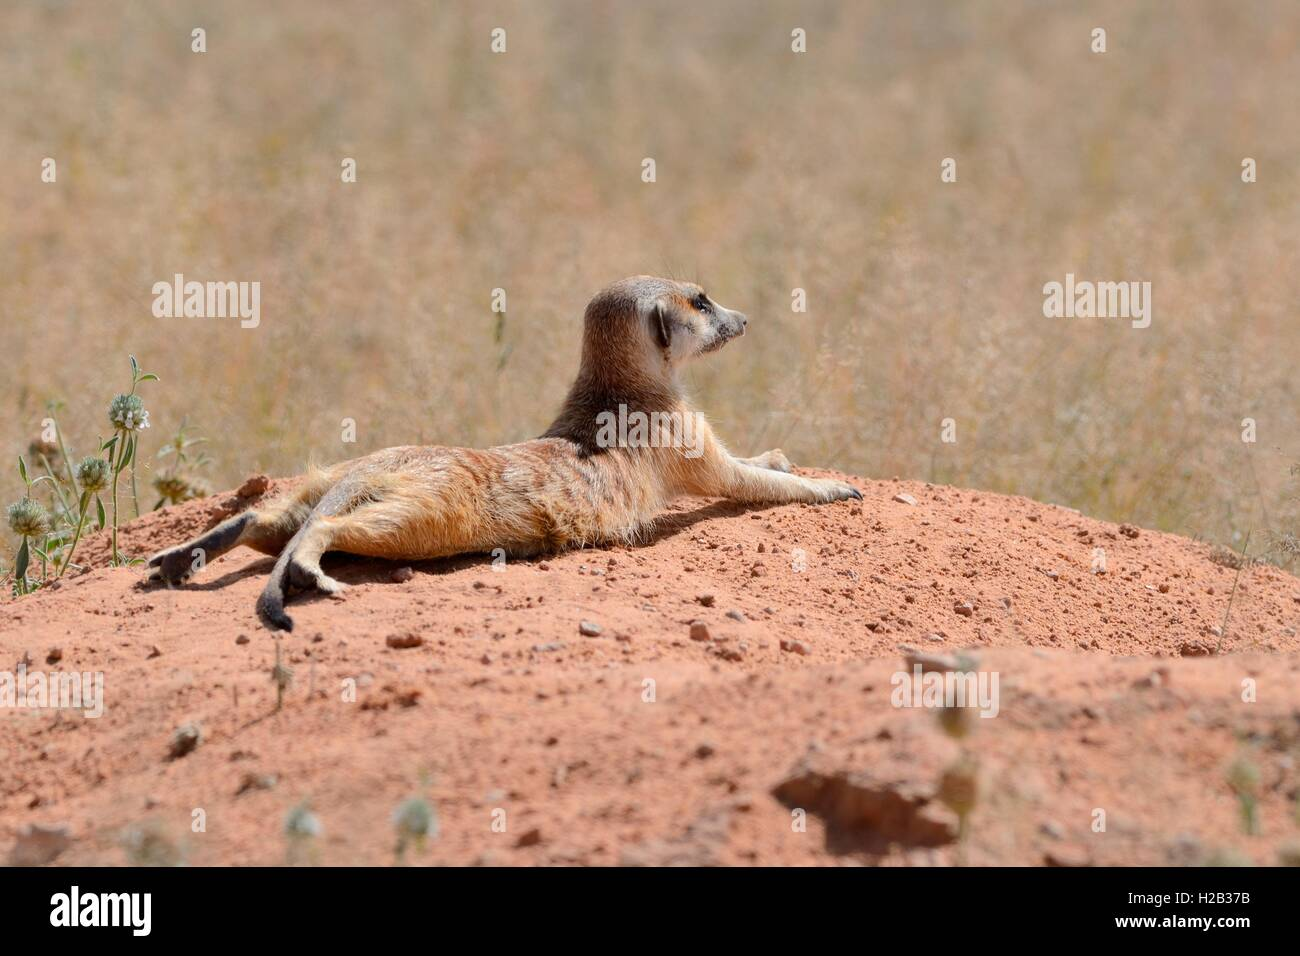 Meerkat (Suricata suricatta), adult lying on a sandy mound, attentive, Kgalagadi Transfrontier Park, Northern Cape, - Stock Image